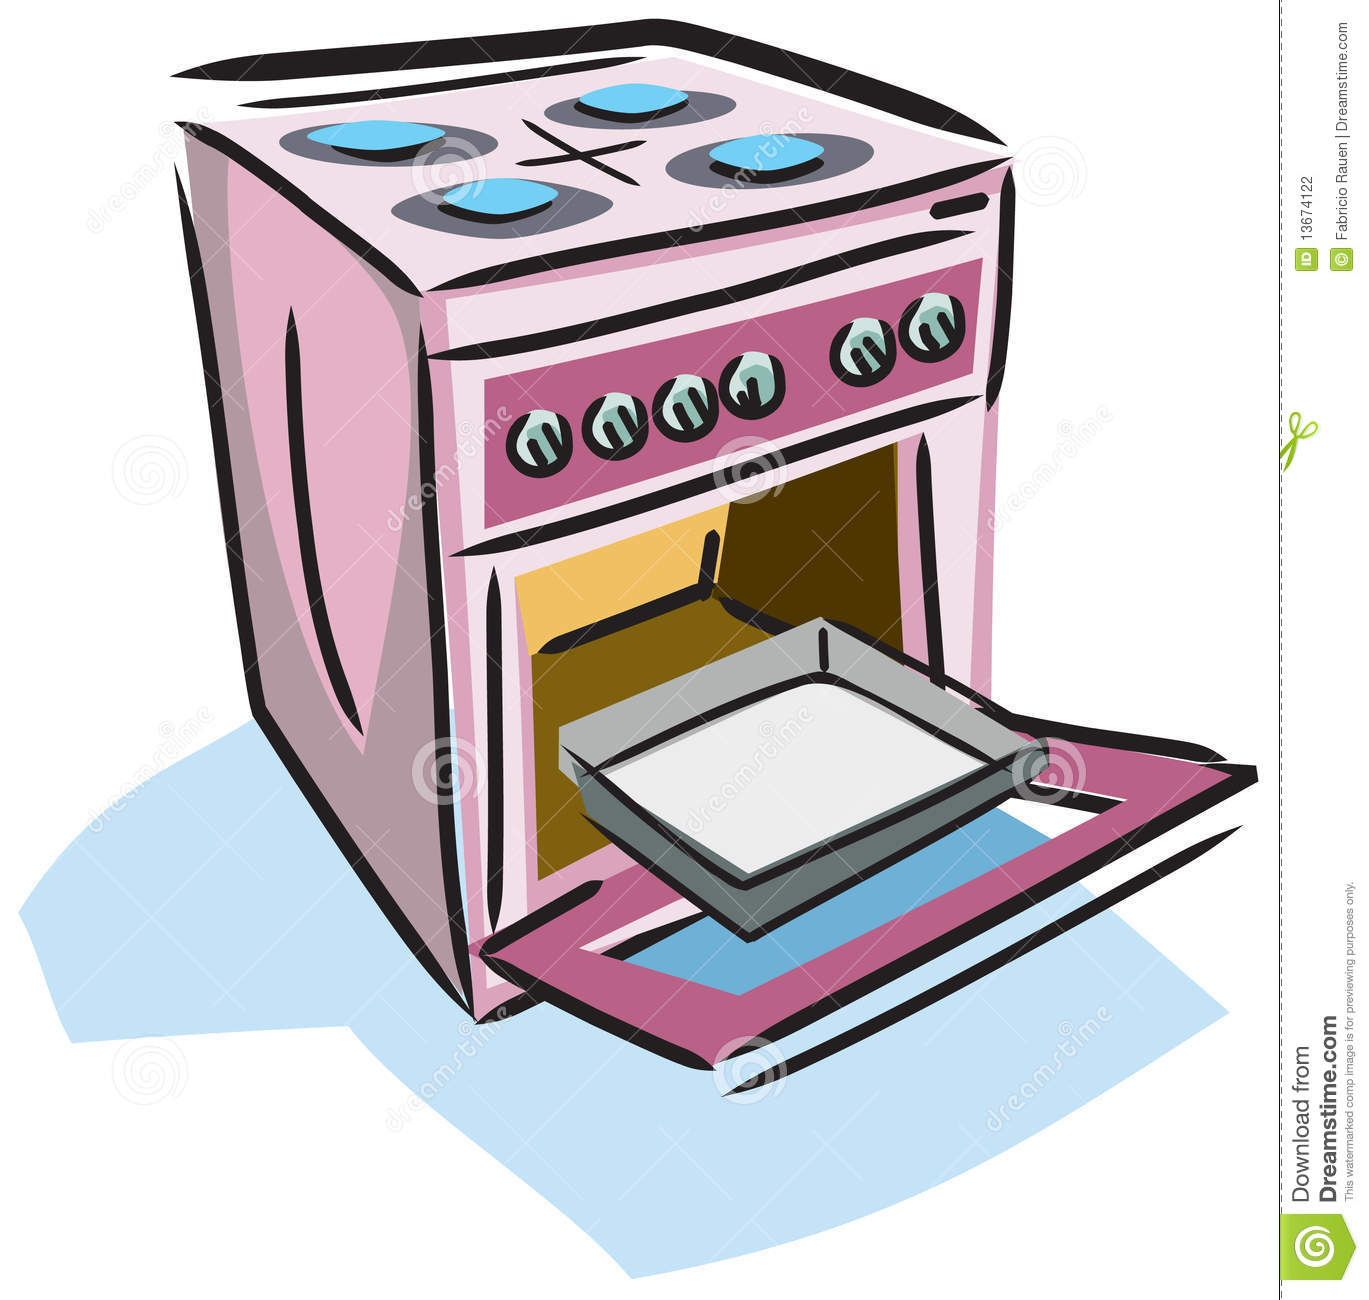 Stock Photography Illustration Stove Image13674122 on seats for house